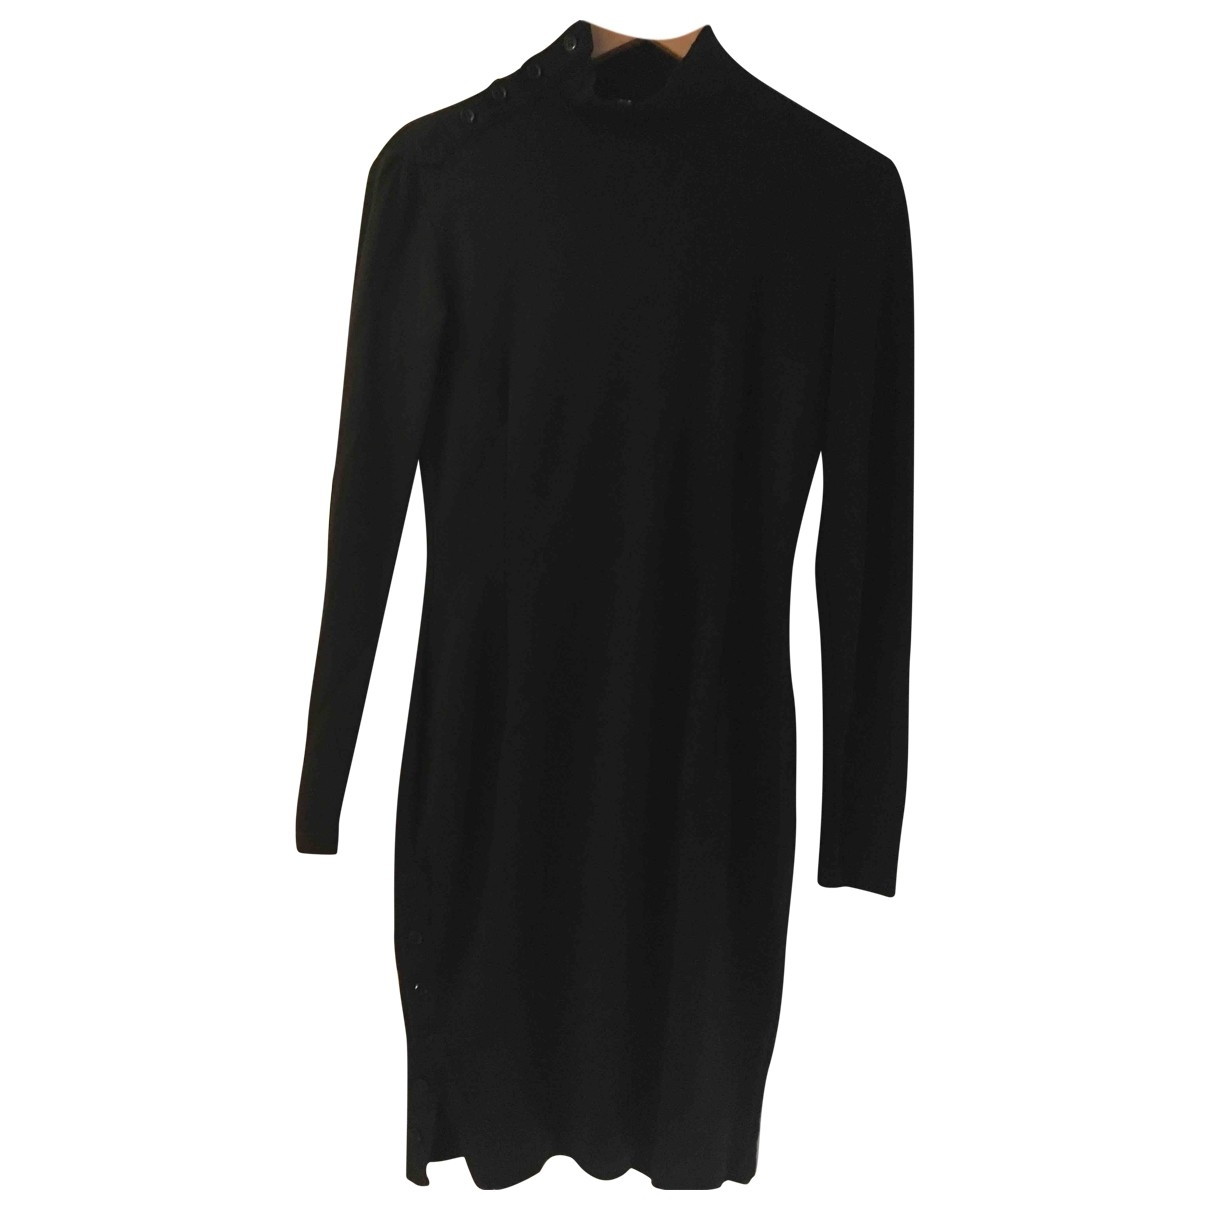 Gianfranco Ferré \N Black dress for Women 36 FR